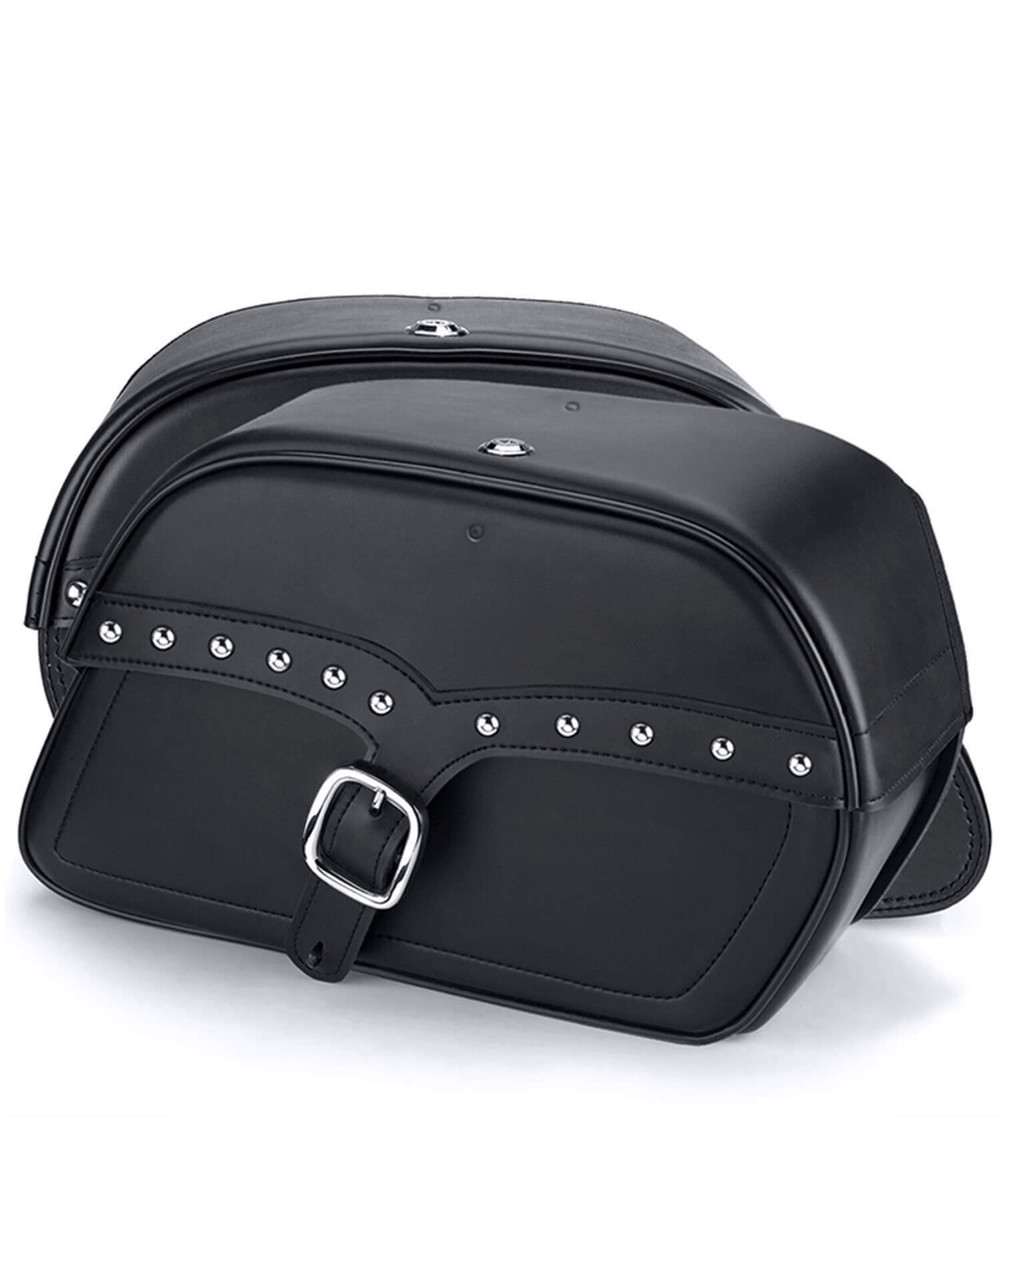 Viking Charger Single Strap Studded Medium Motorcycle Saddlebags For Harley Softail Springer FXSTS both bags view